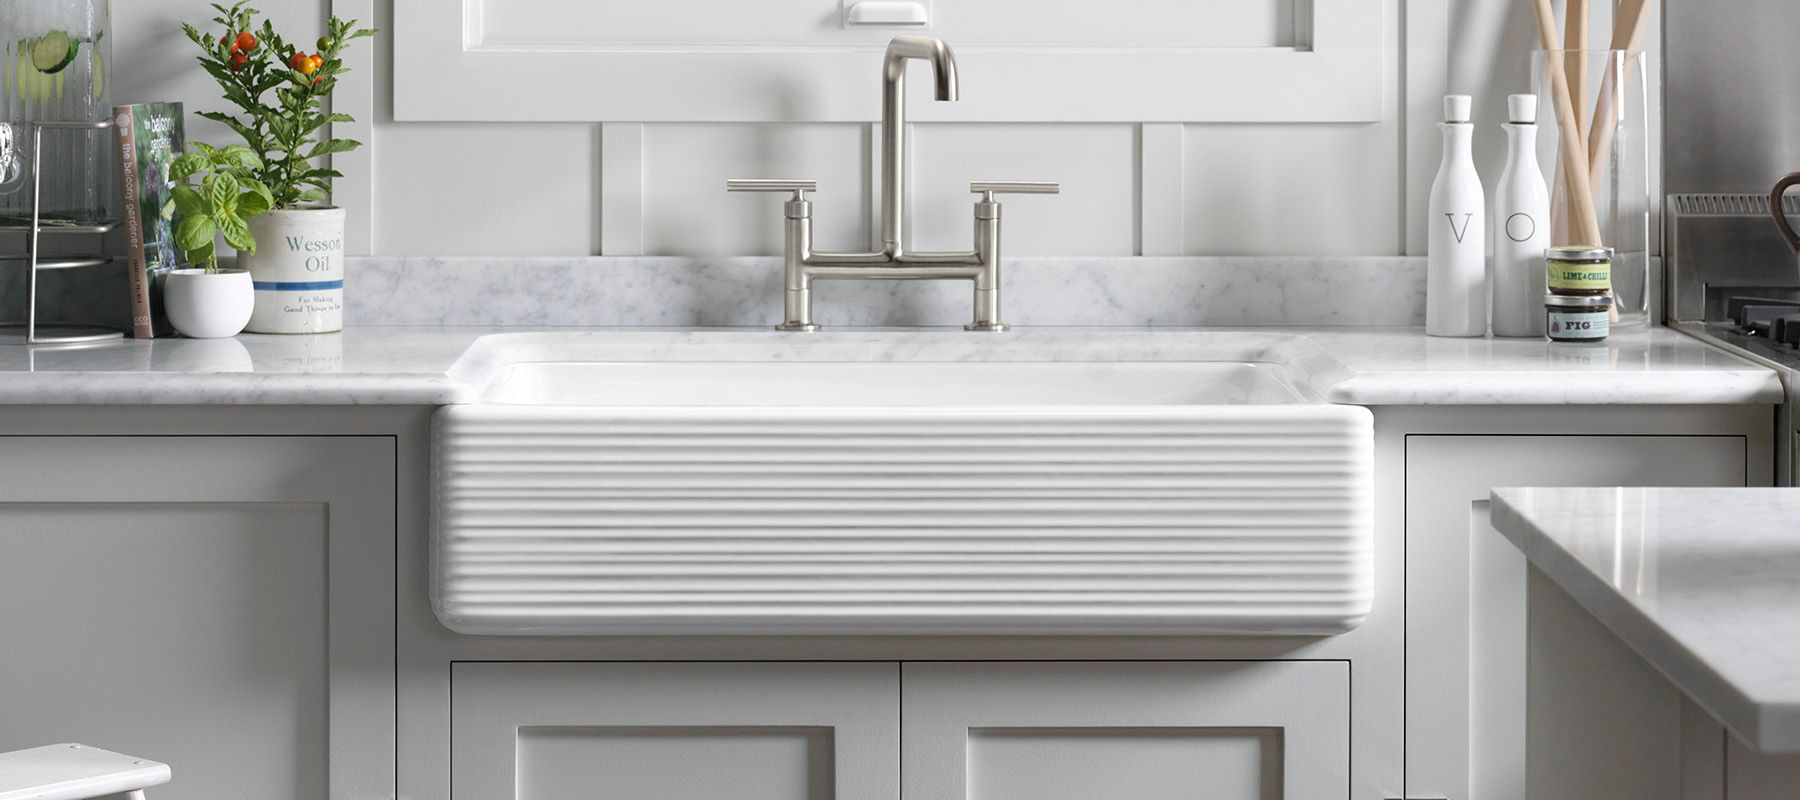 stainless steel kitchen sinks | kitchen | kohler